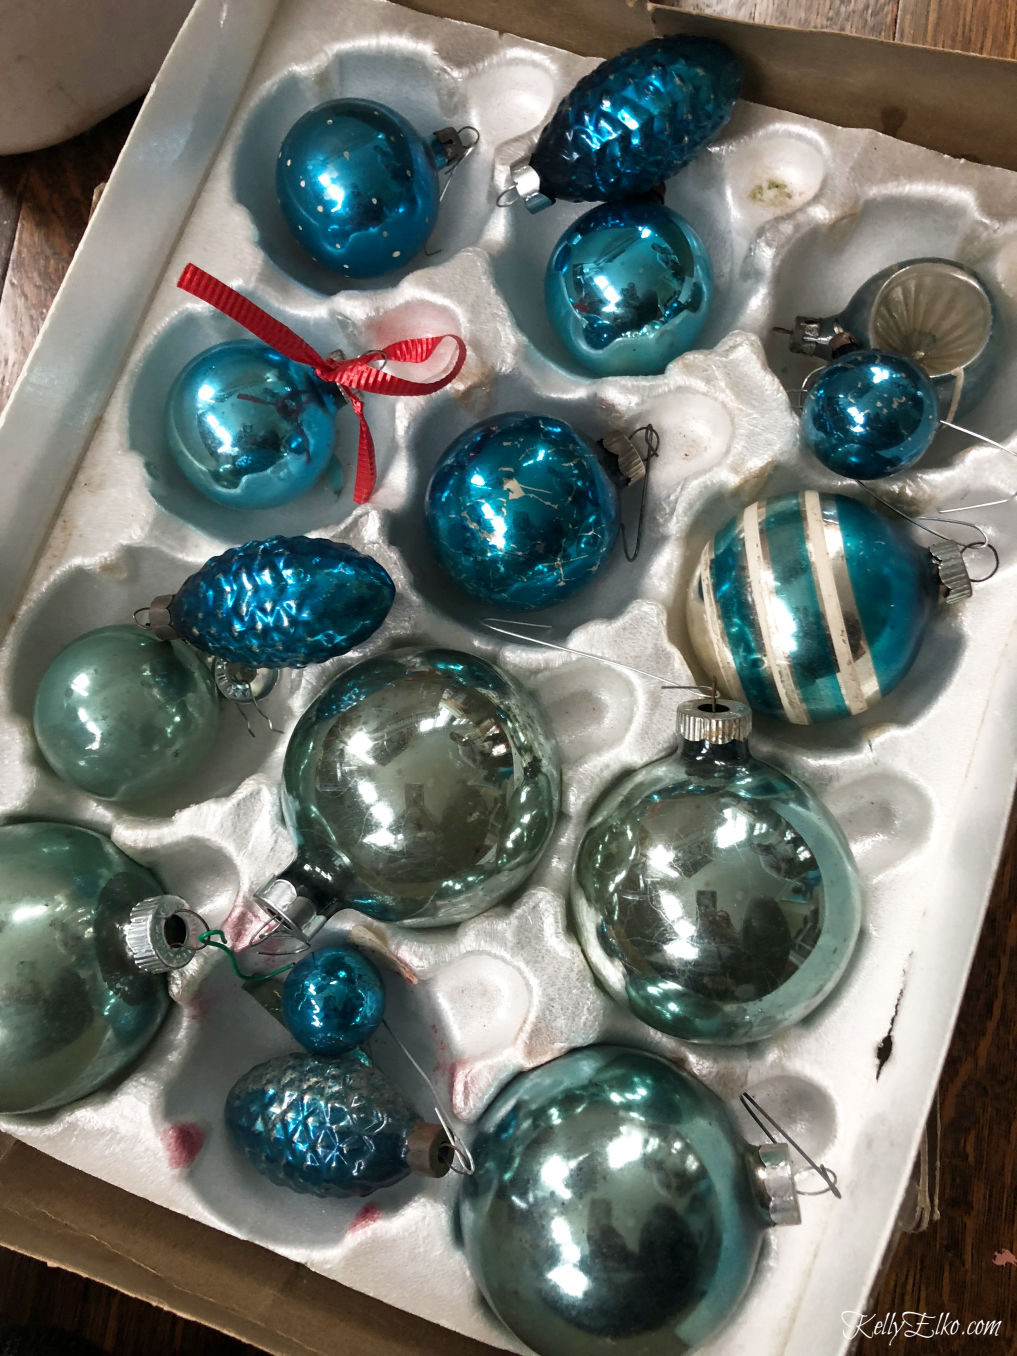 Behind the scenes Better Homes and Gardens photo shoot kellyelko.com #shinybrites #vintageornamets #christmasornaments